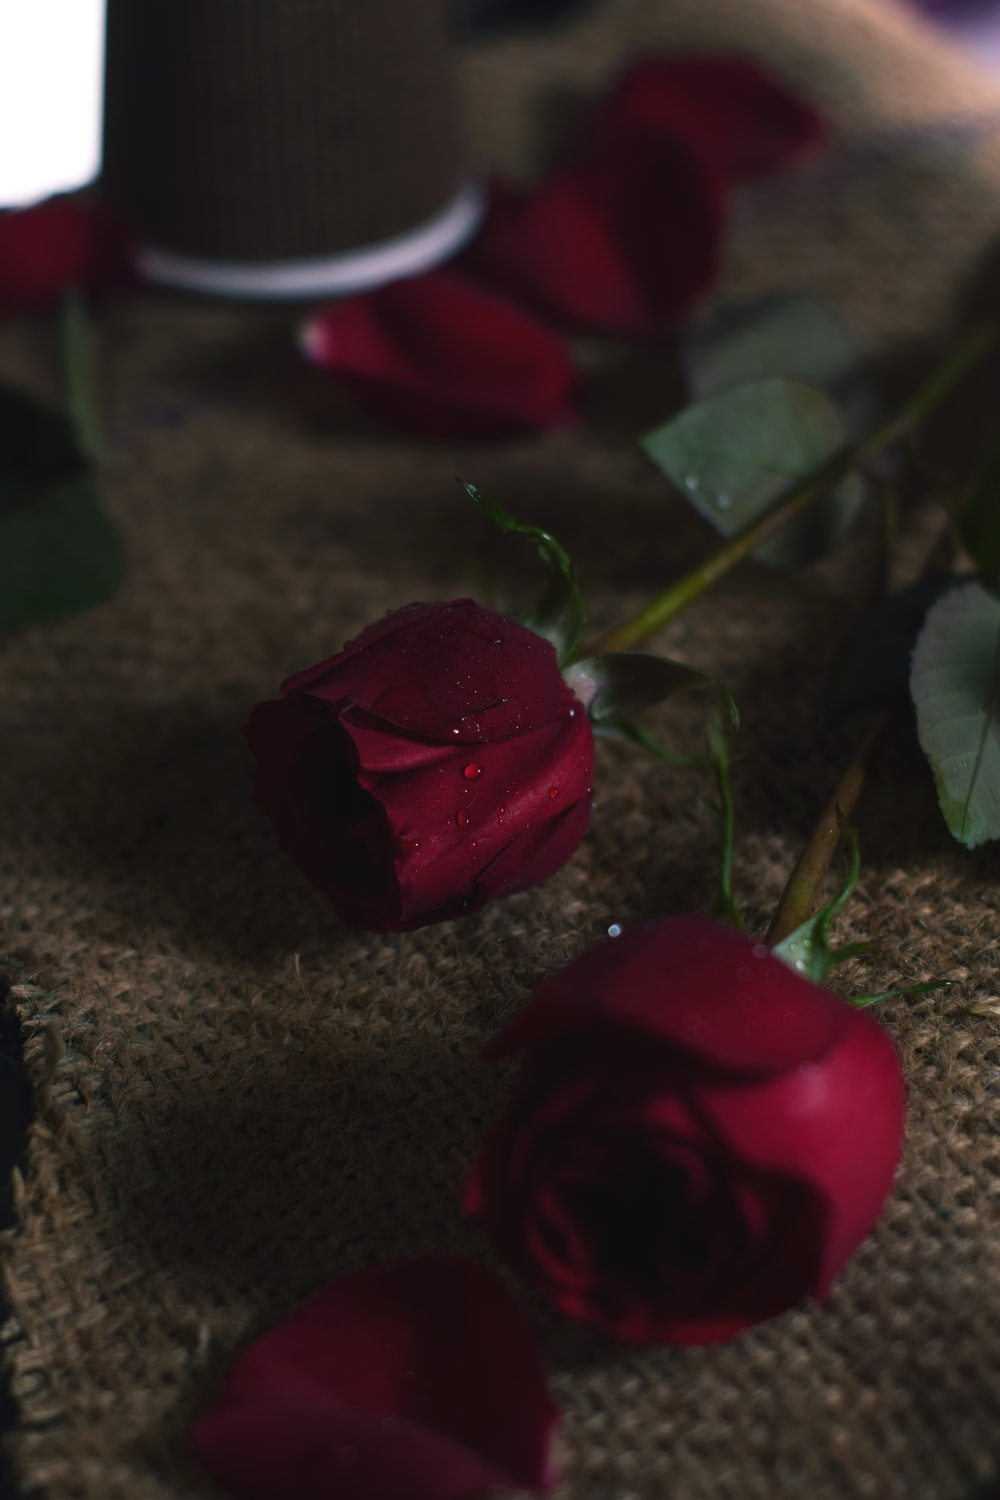 red rose on brown textile